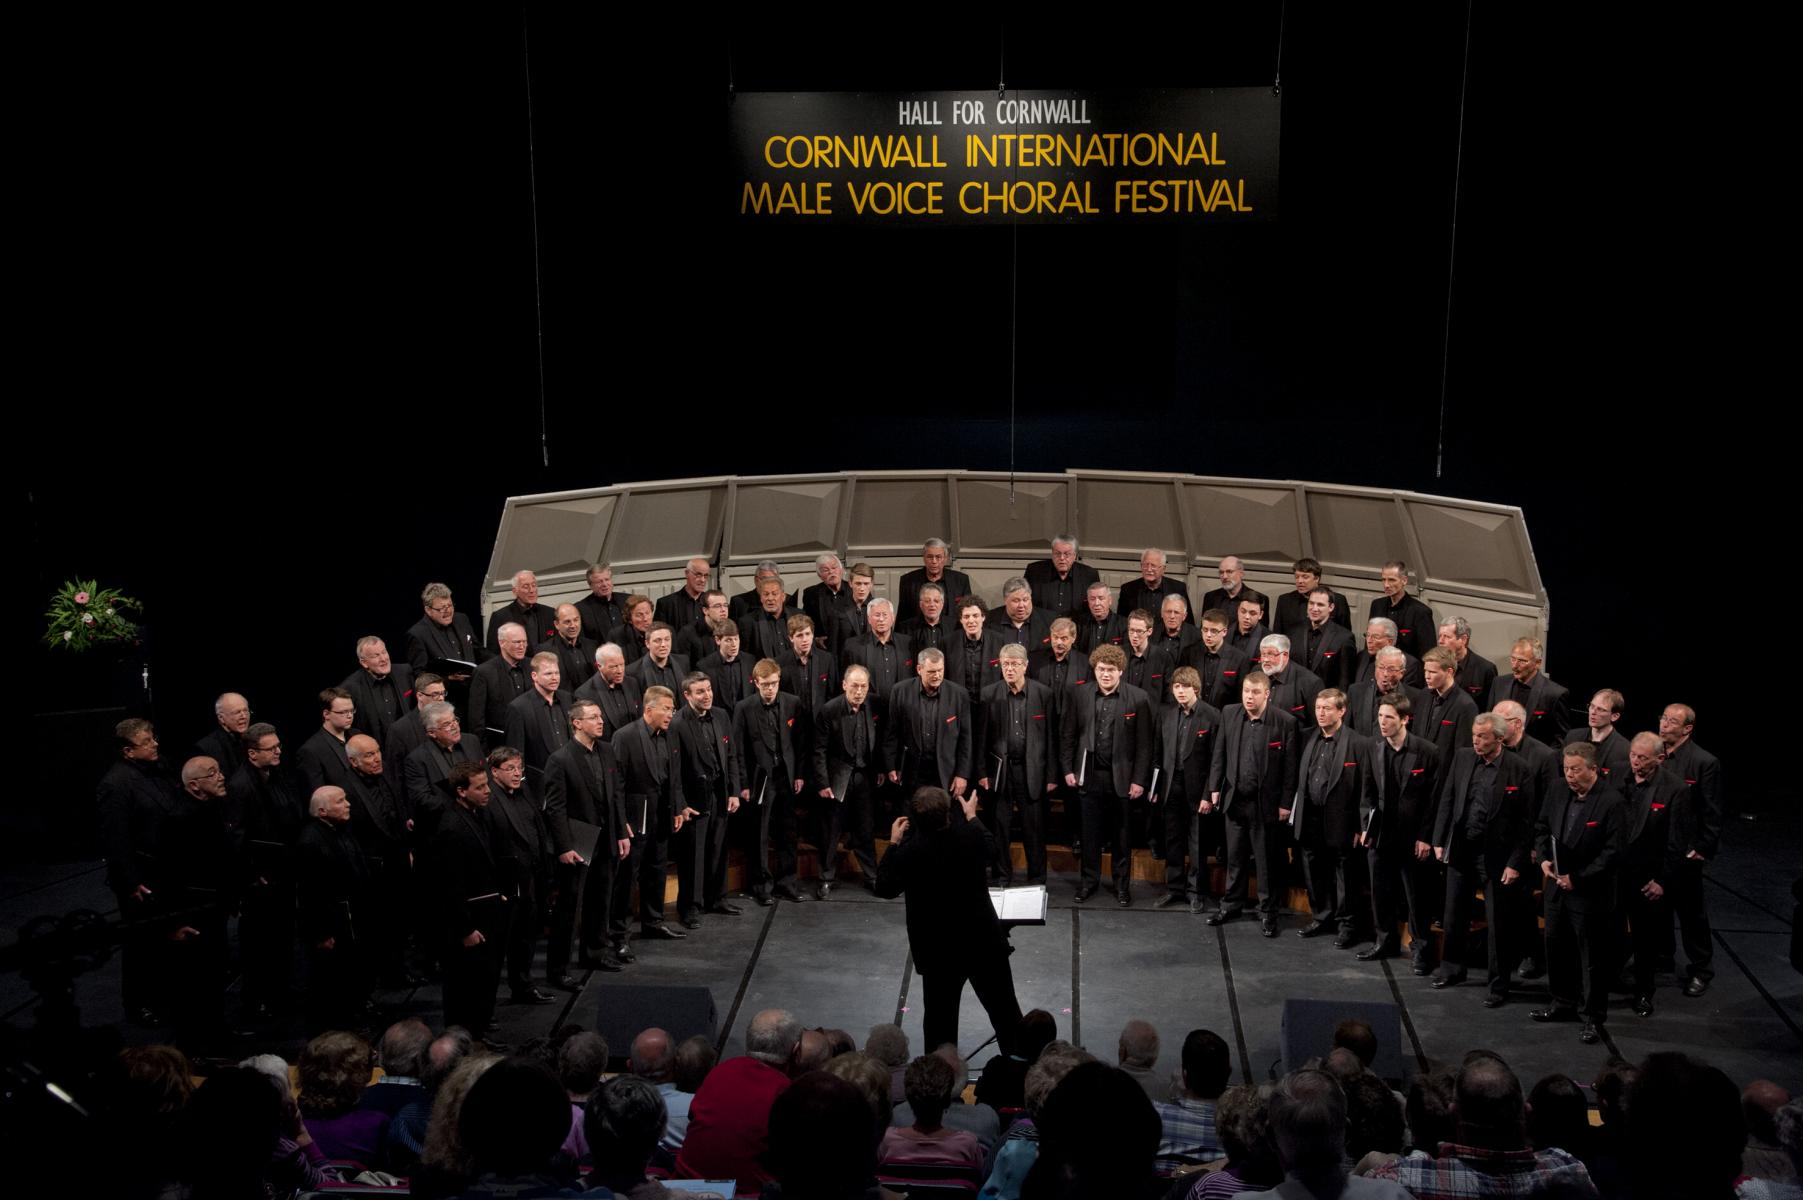 Die HARMONIE Lindenholzhausen in Cornwall beim International male voice choral festival, 2013